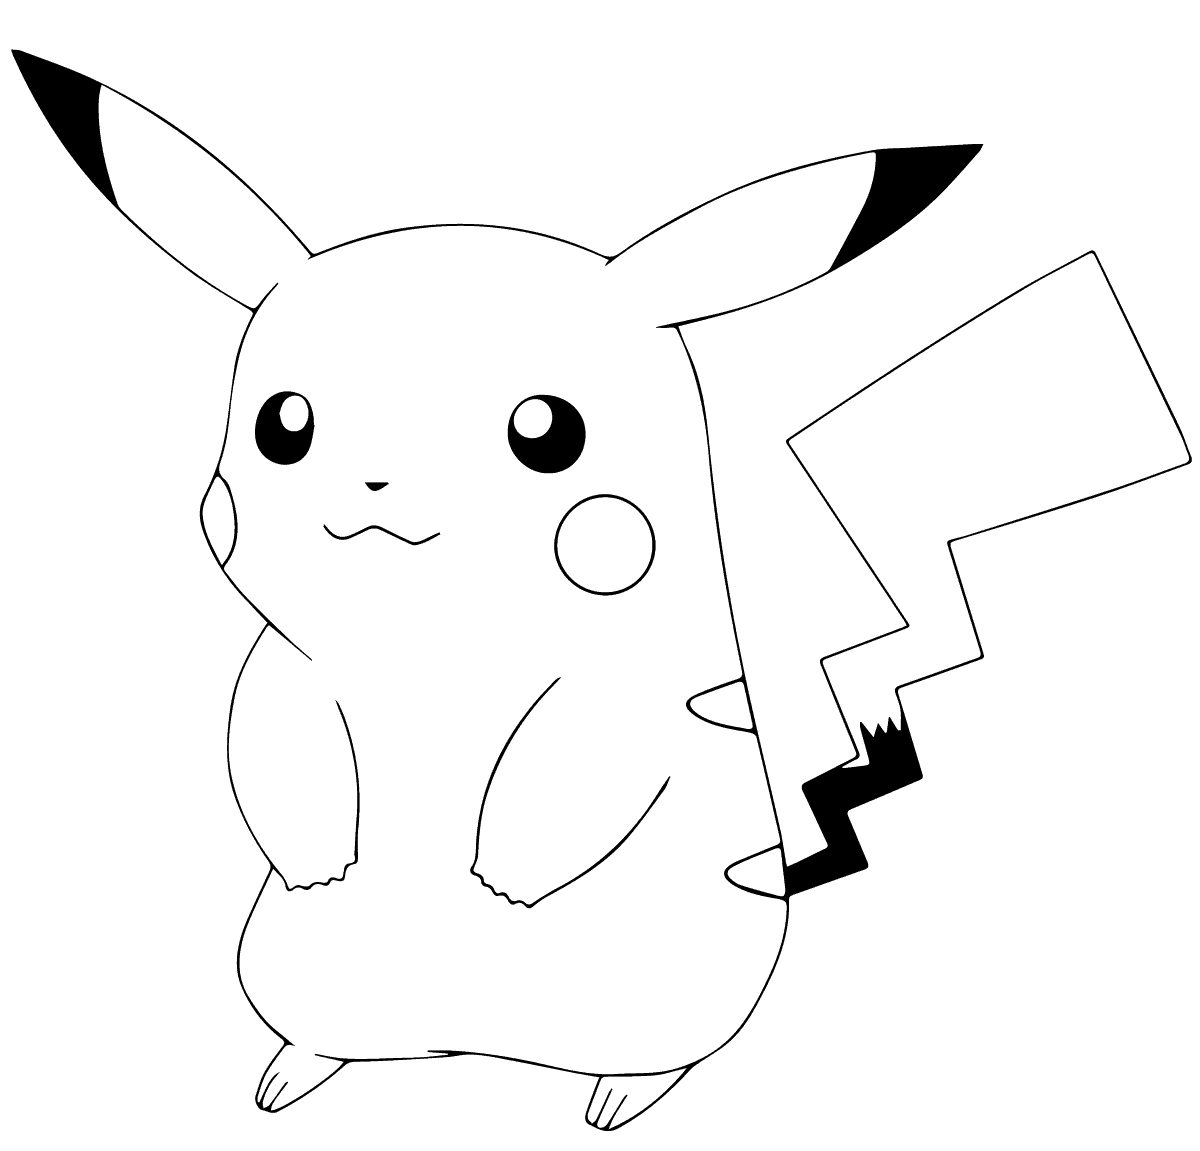 pikachu cute pokemon coloring pages cute pikachu coloring pages at getcoloringscom free coloring pages cute pikachu pokemon